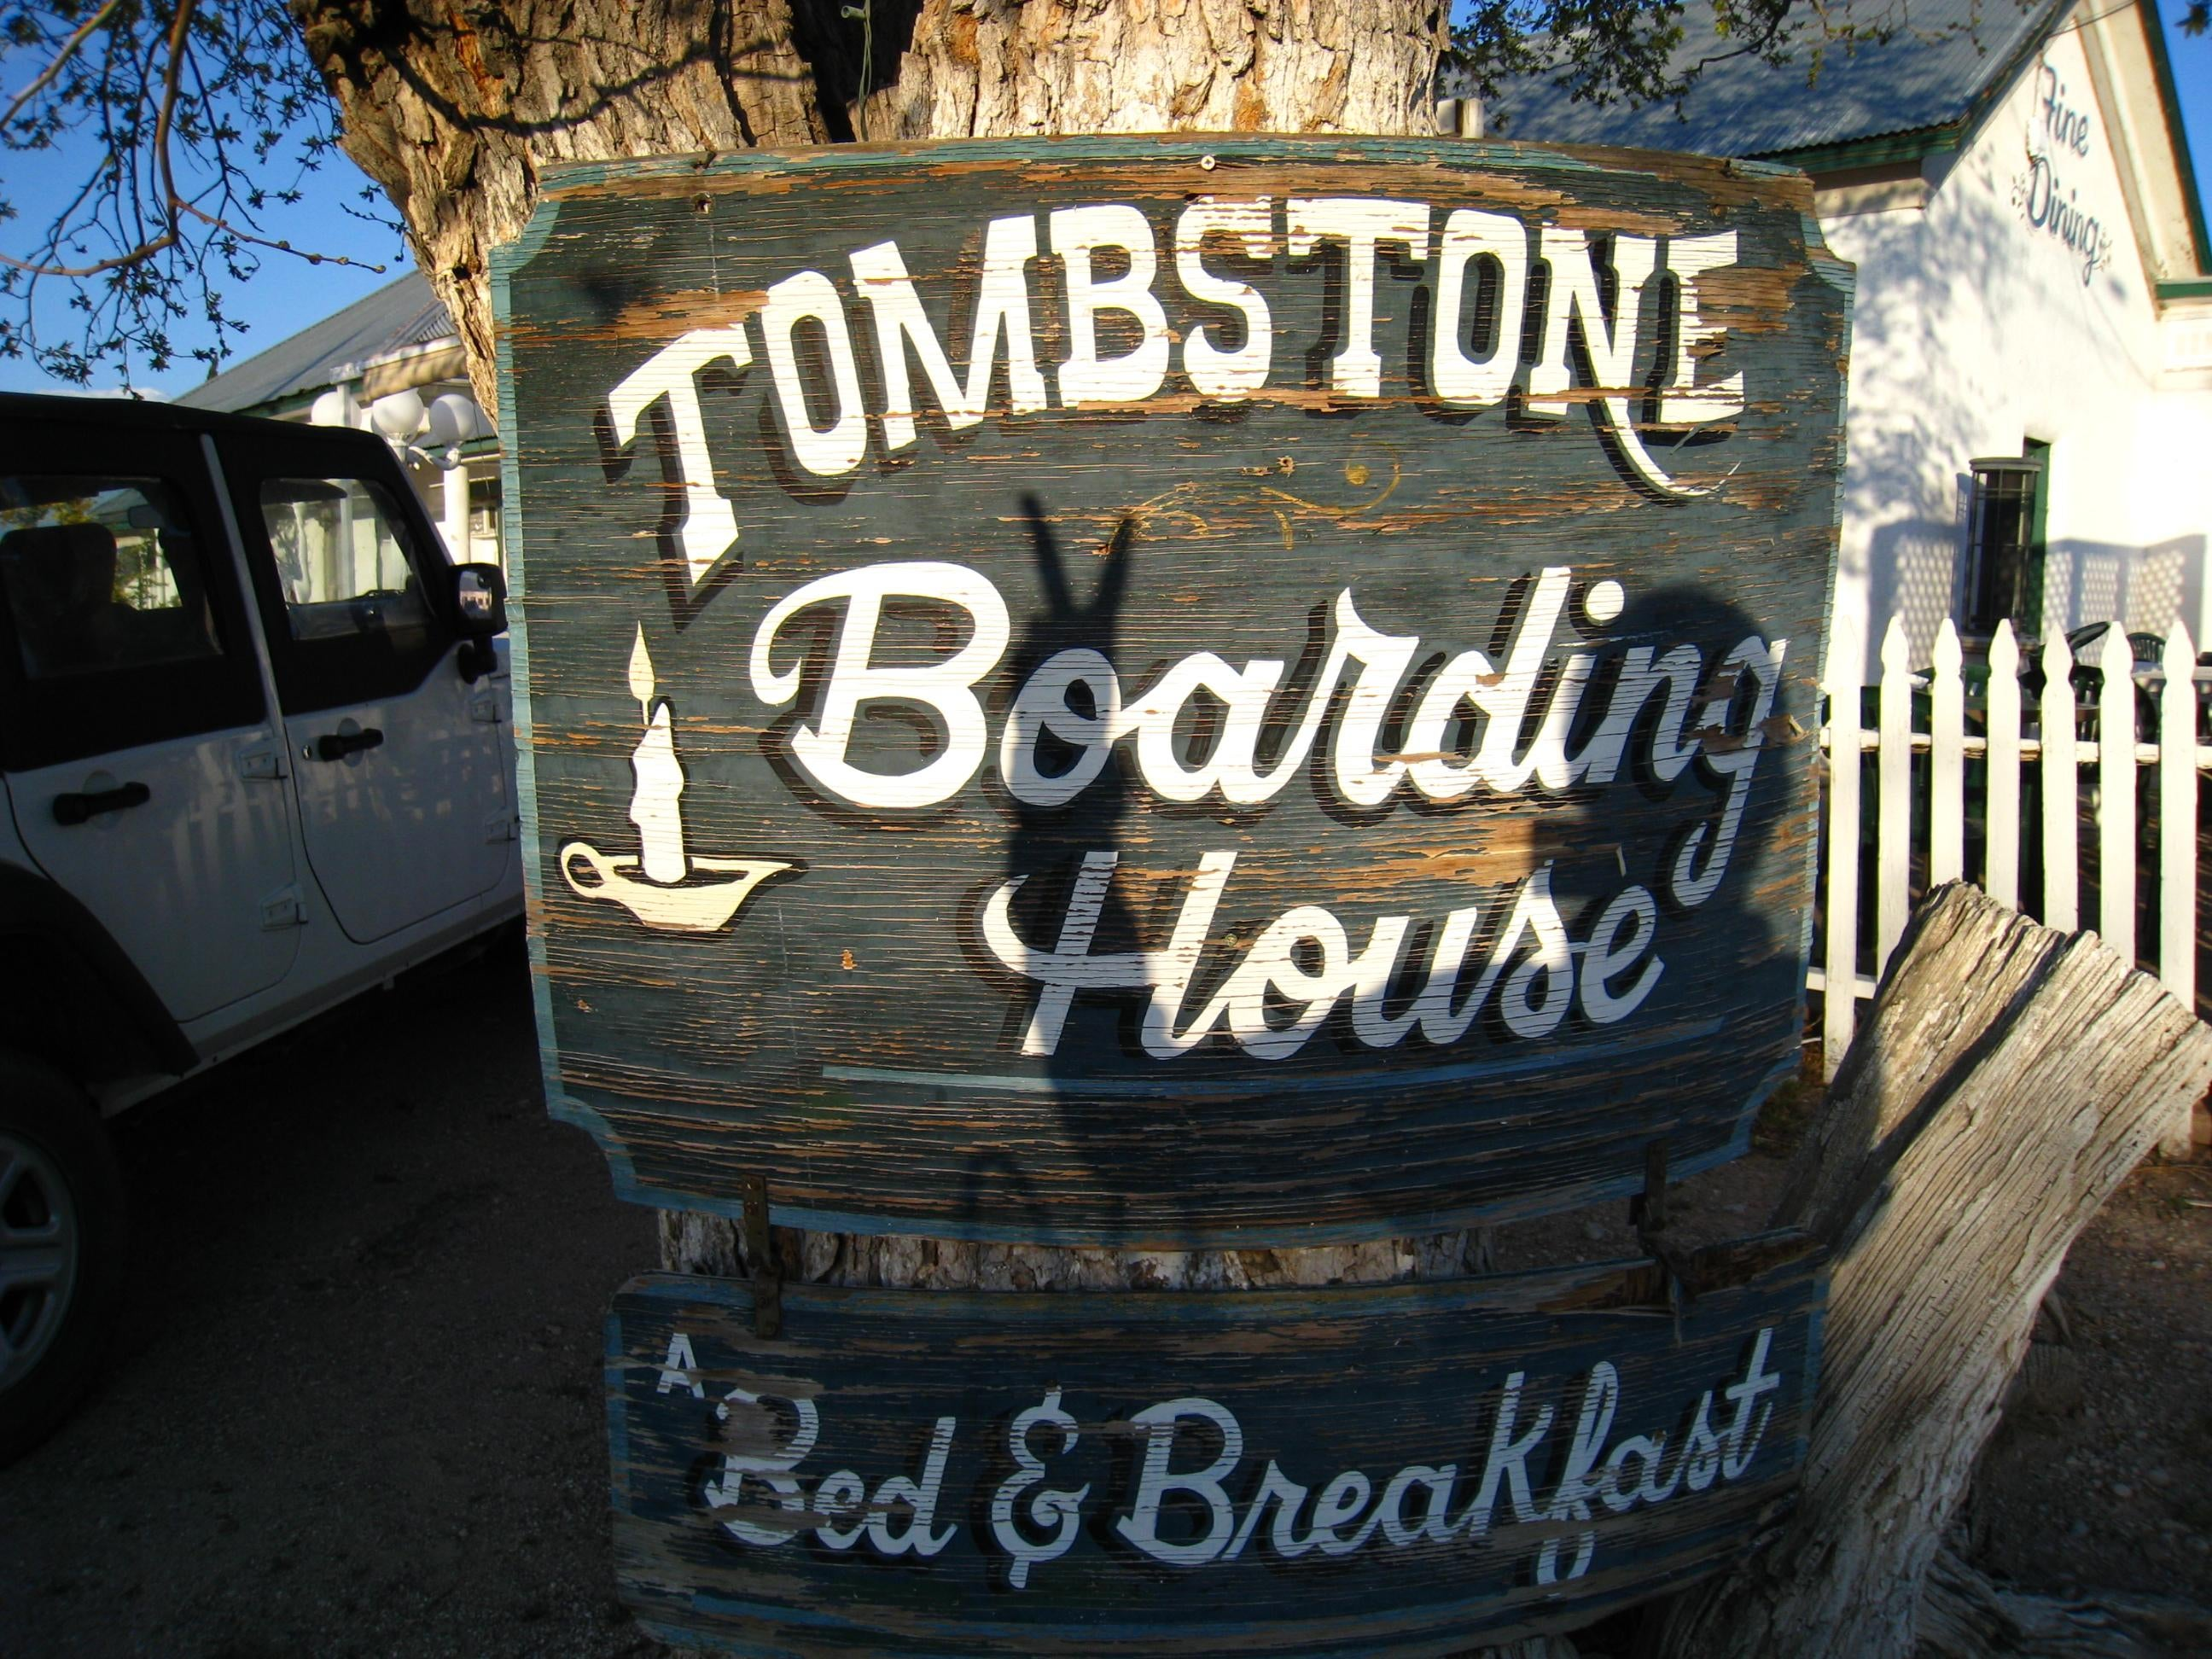 The Tombstone Boarding House